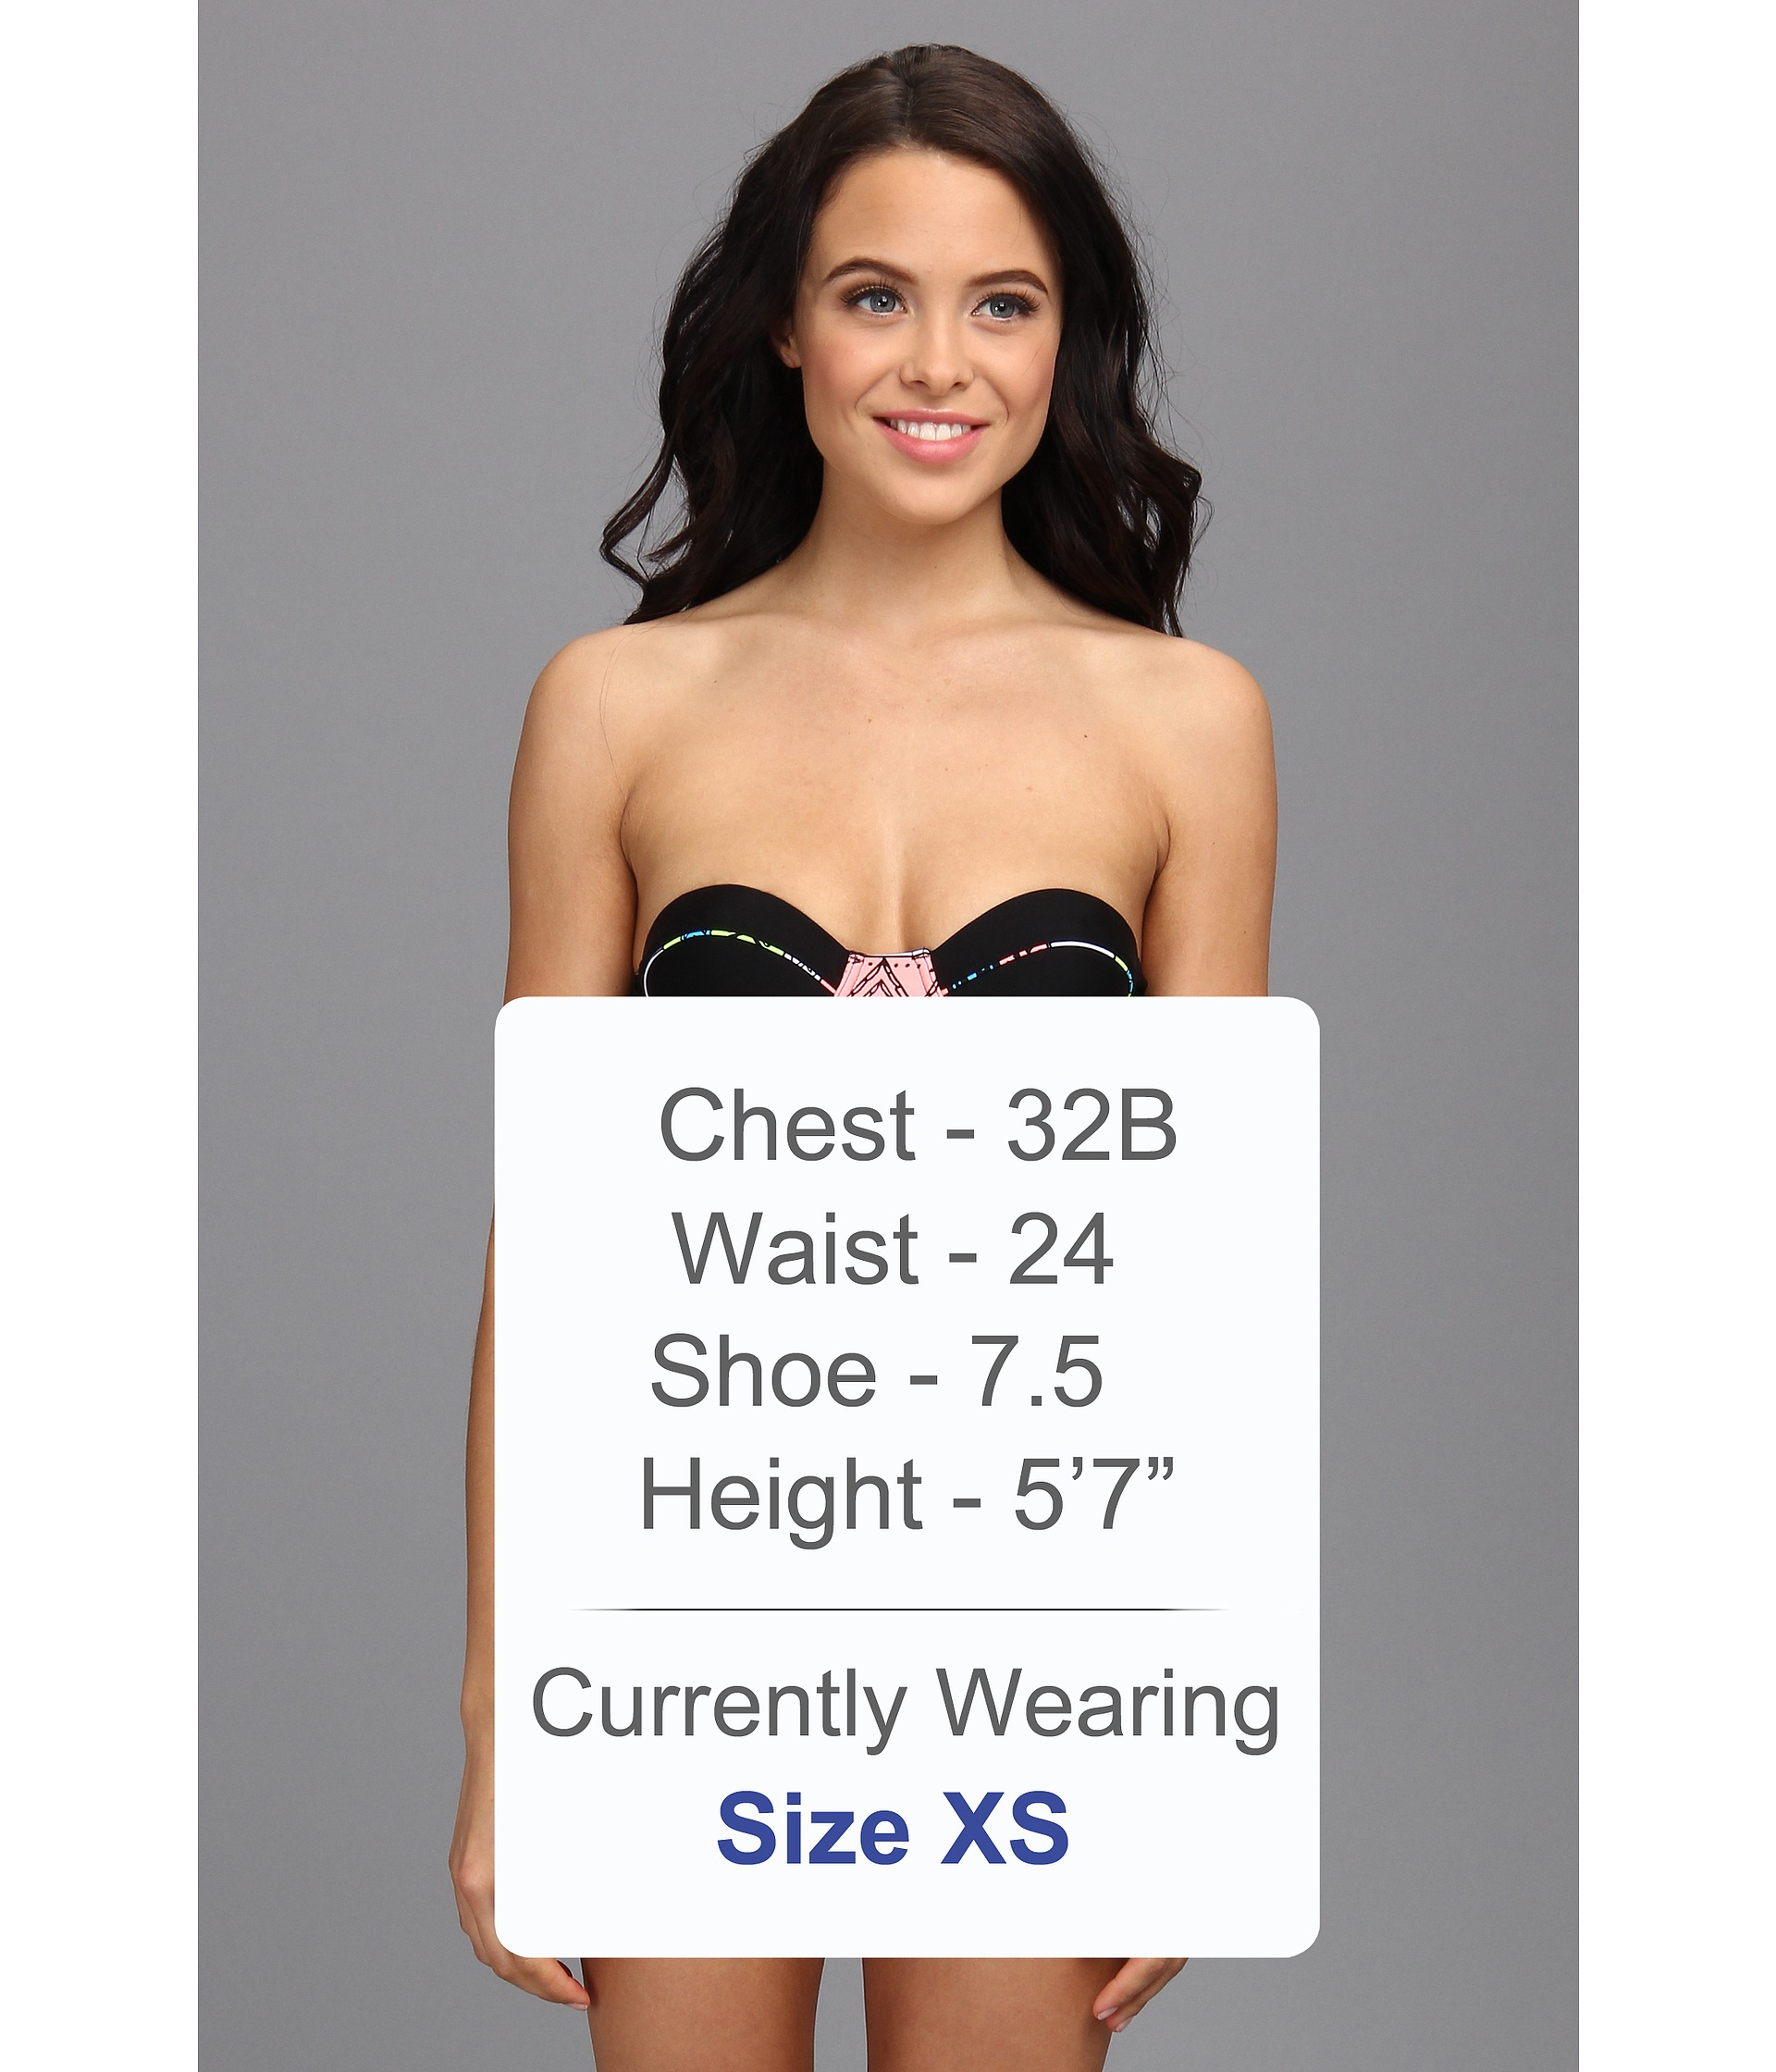 Breast Implant Size Boston MA  How to choose cup size in cc